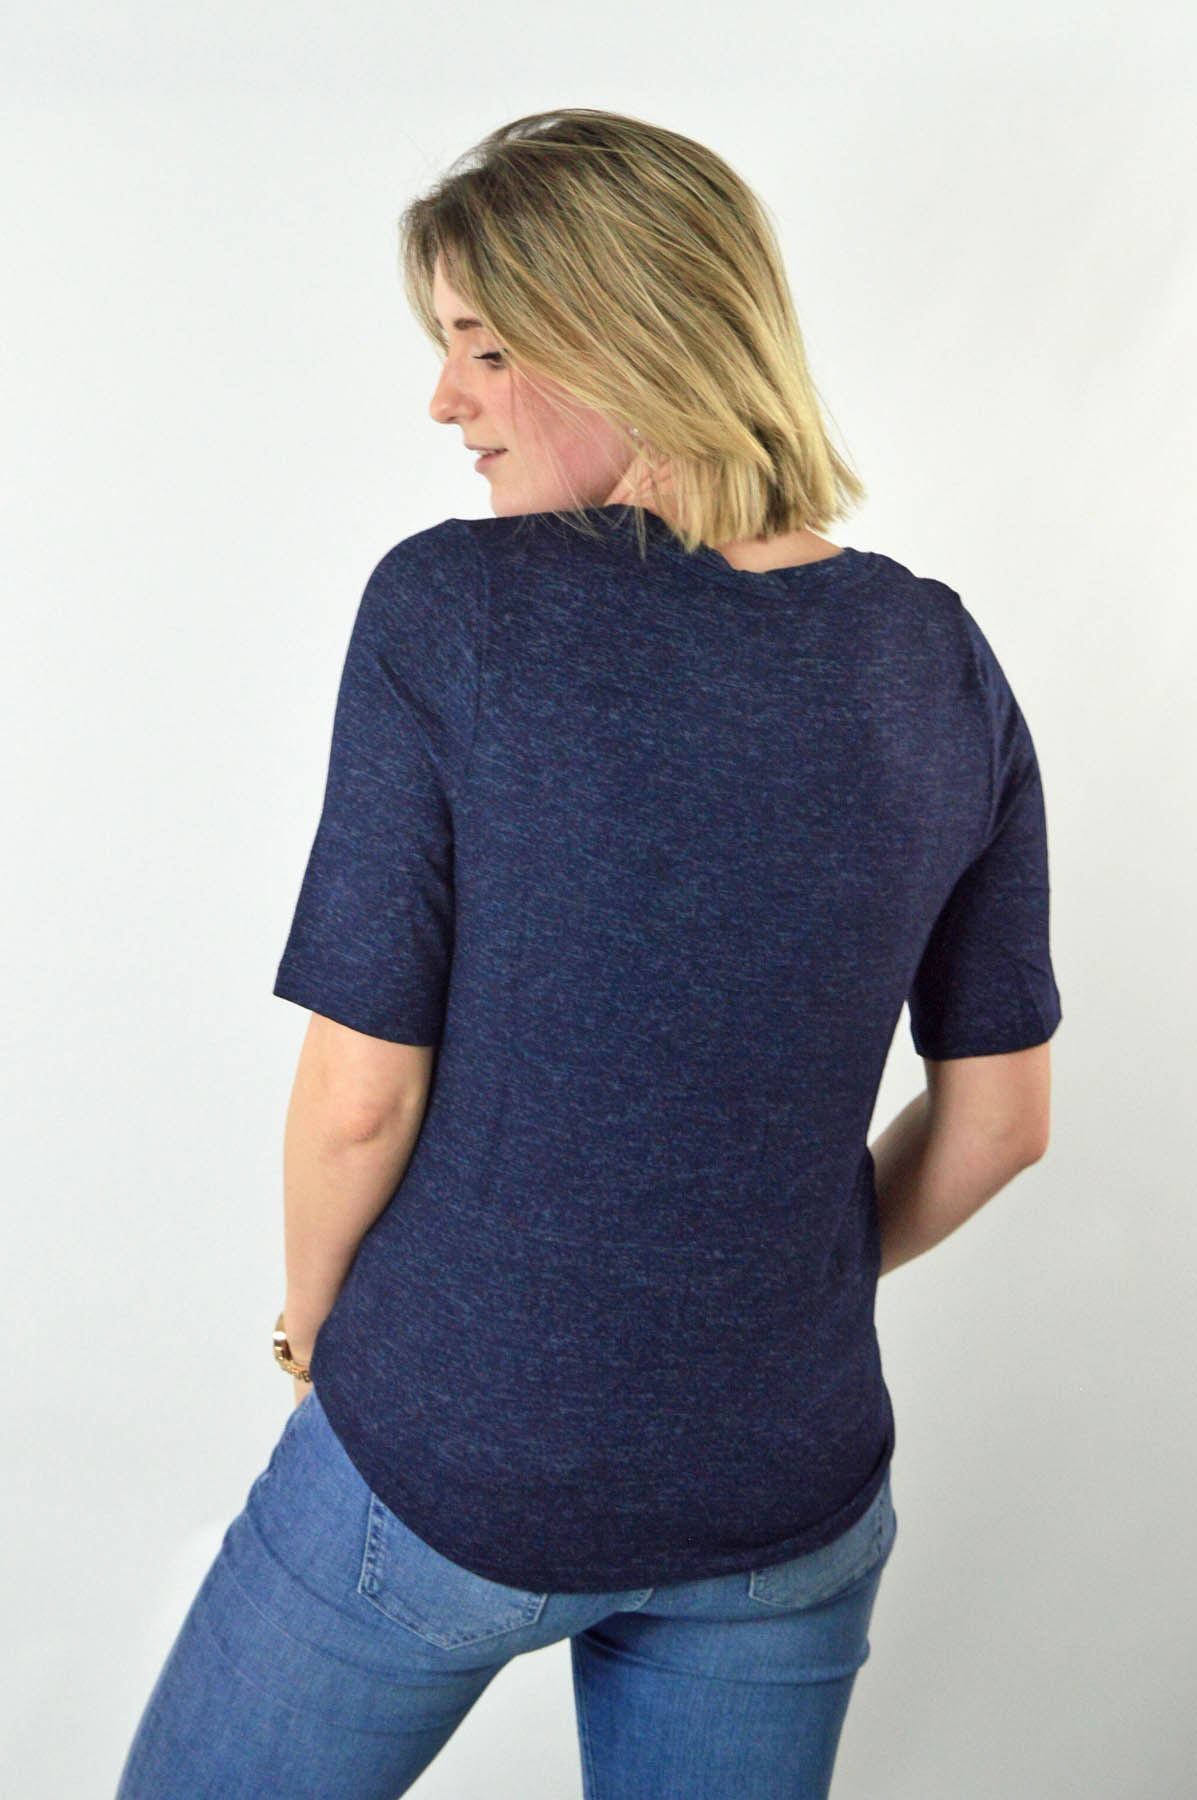 MARKS-AND-SPENCER-M-amp-S-Soft-Knit-Scoop-Neck-Top-Curved-Hem-Pale-Pink-Dark-Navy thumbnail 4